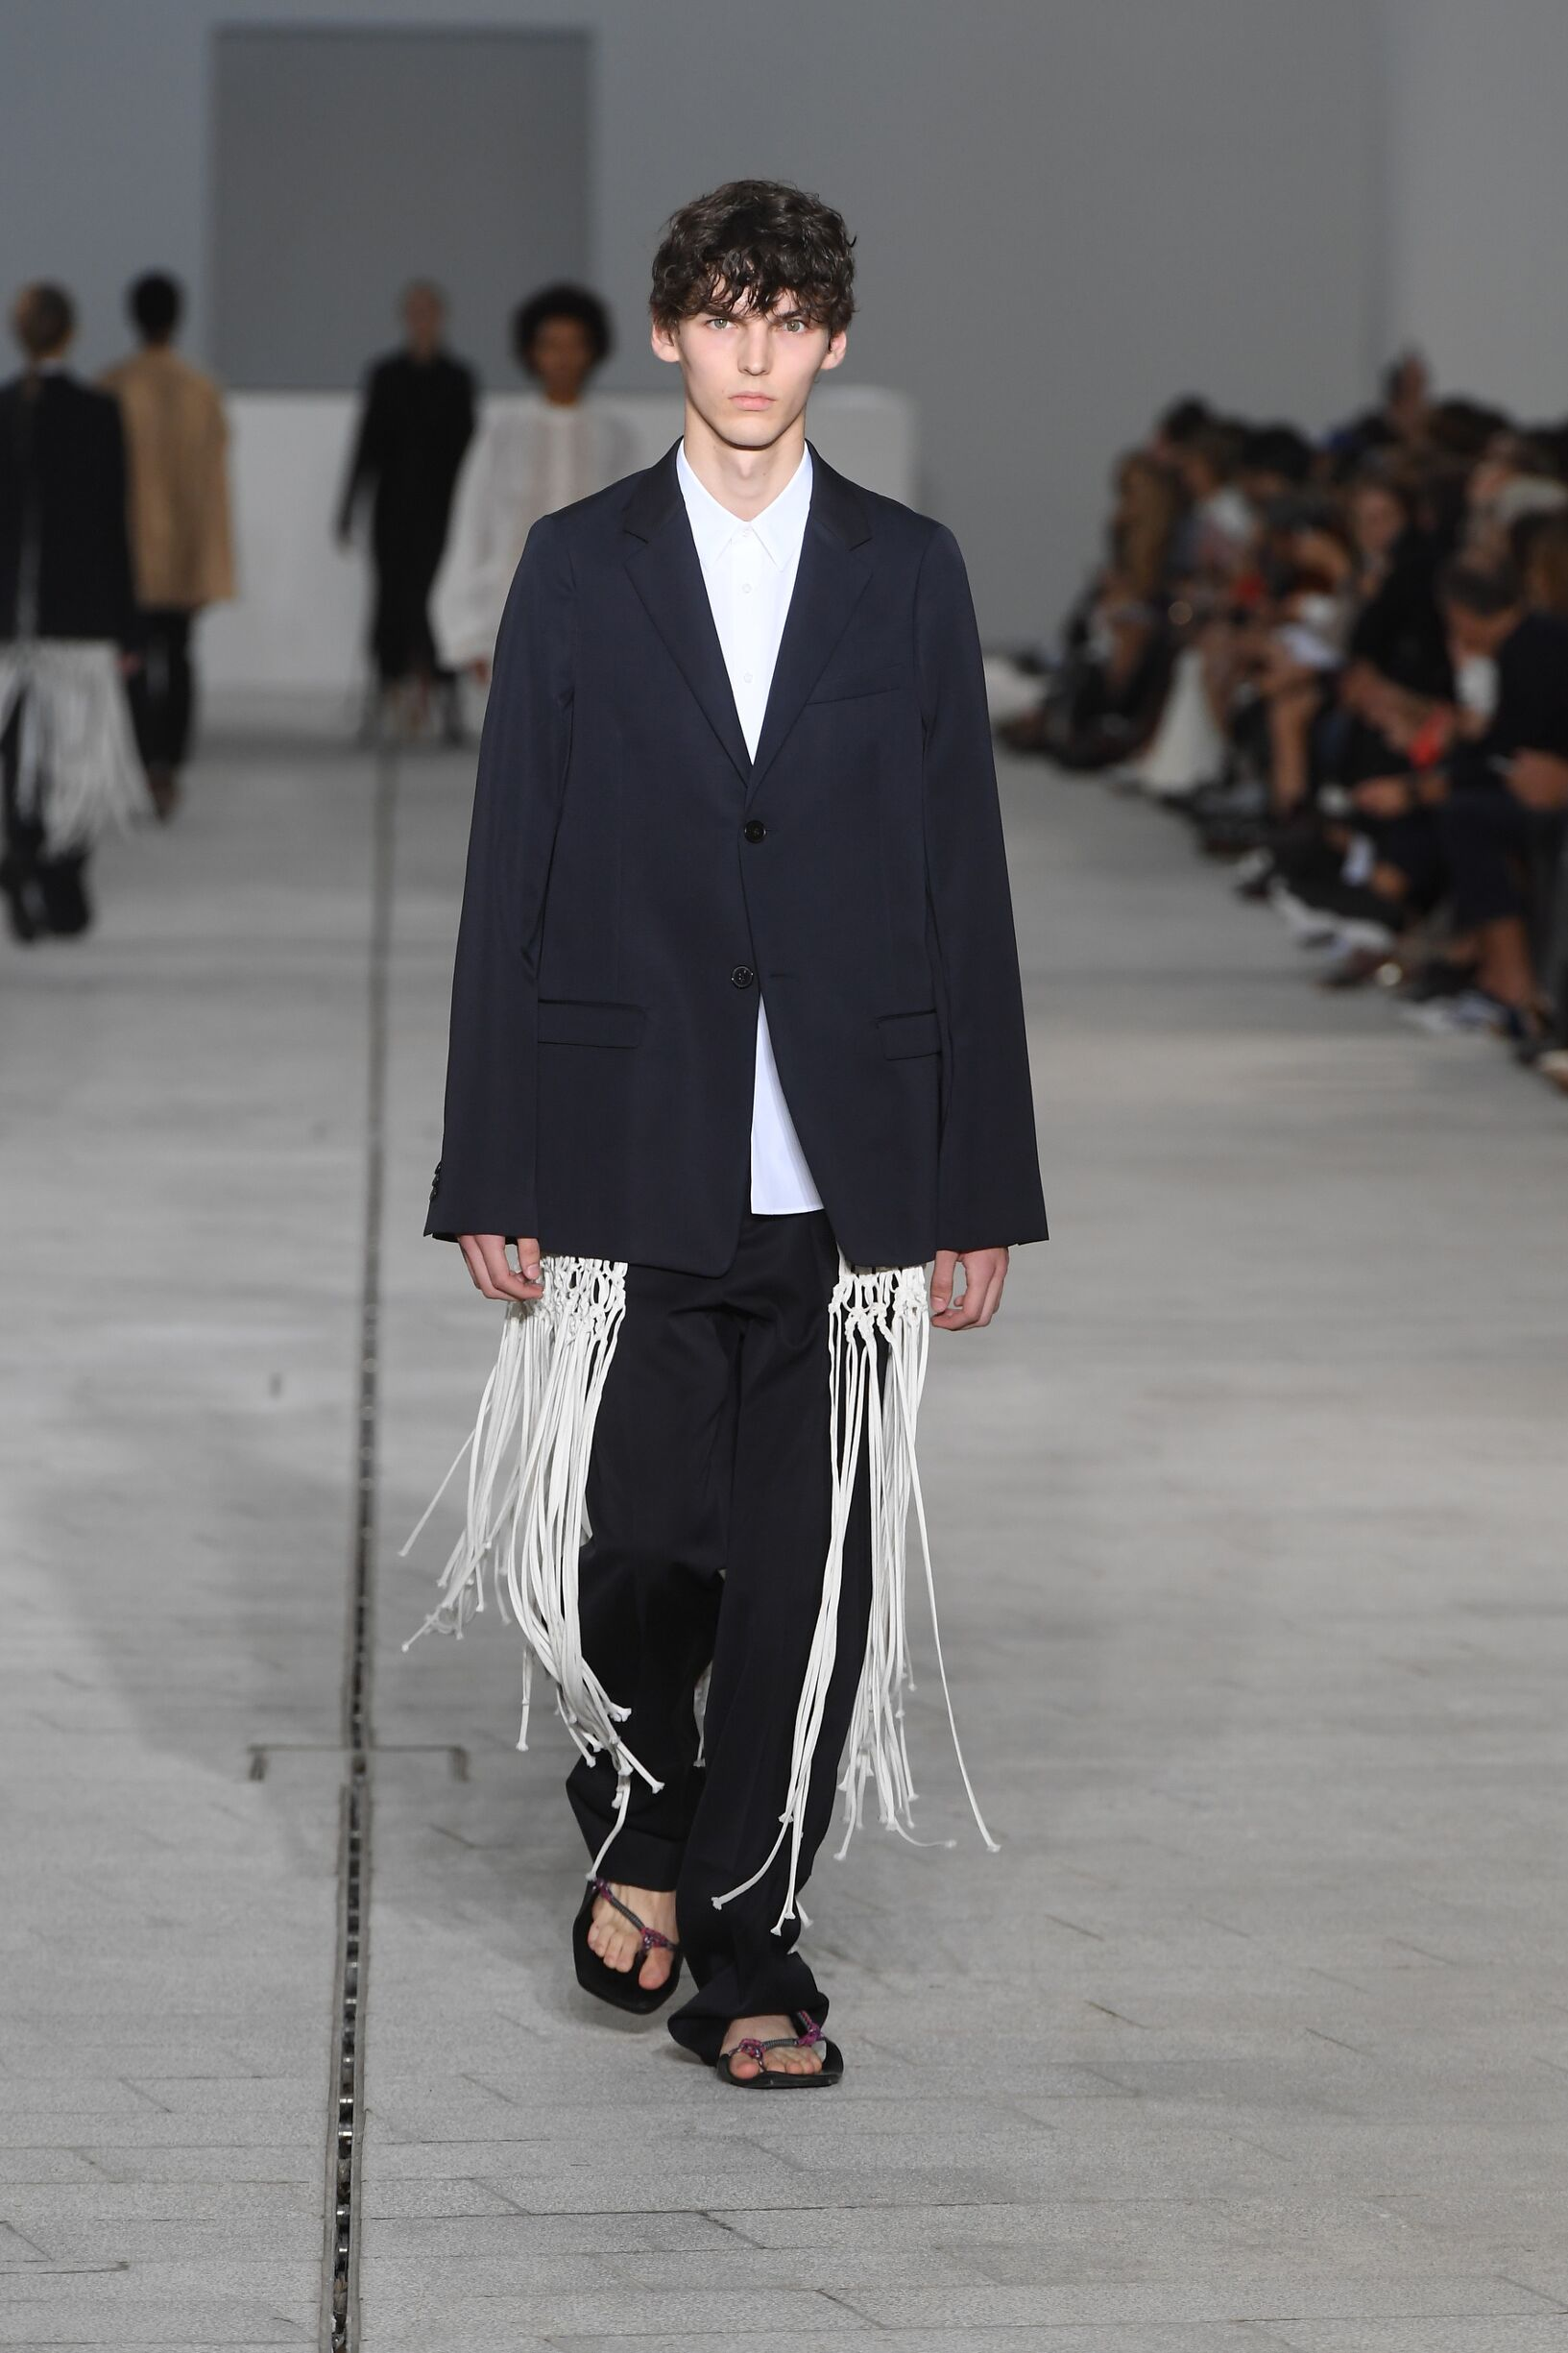 Jil Sander Menswear Collection Trends